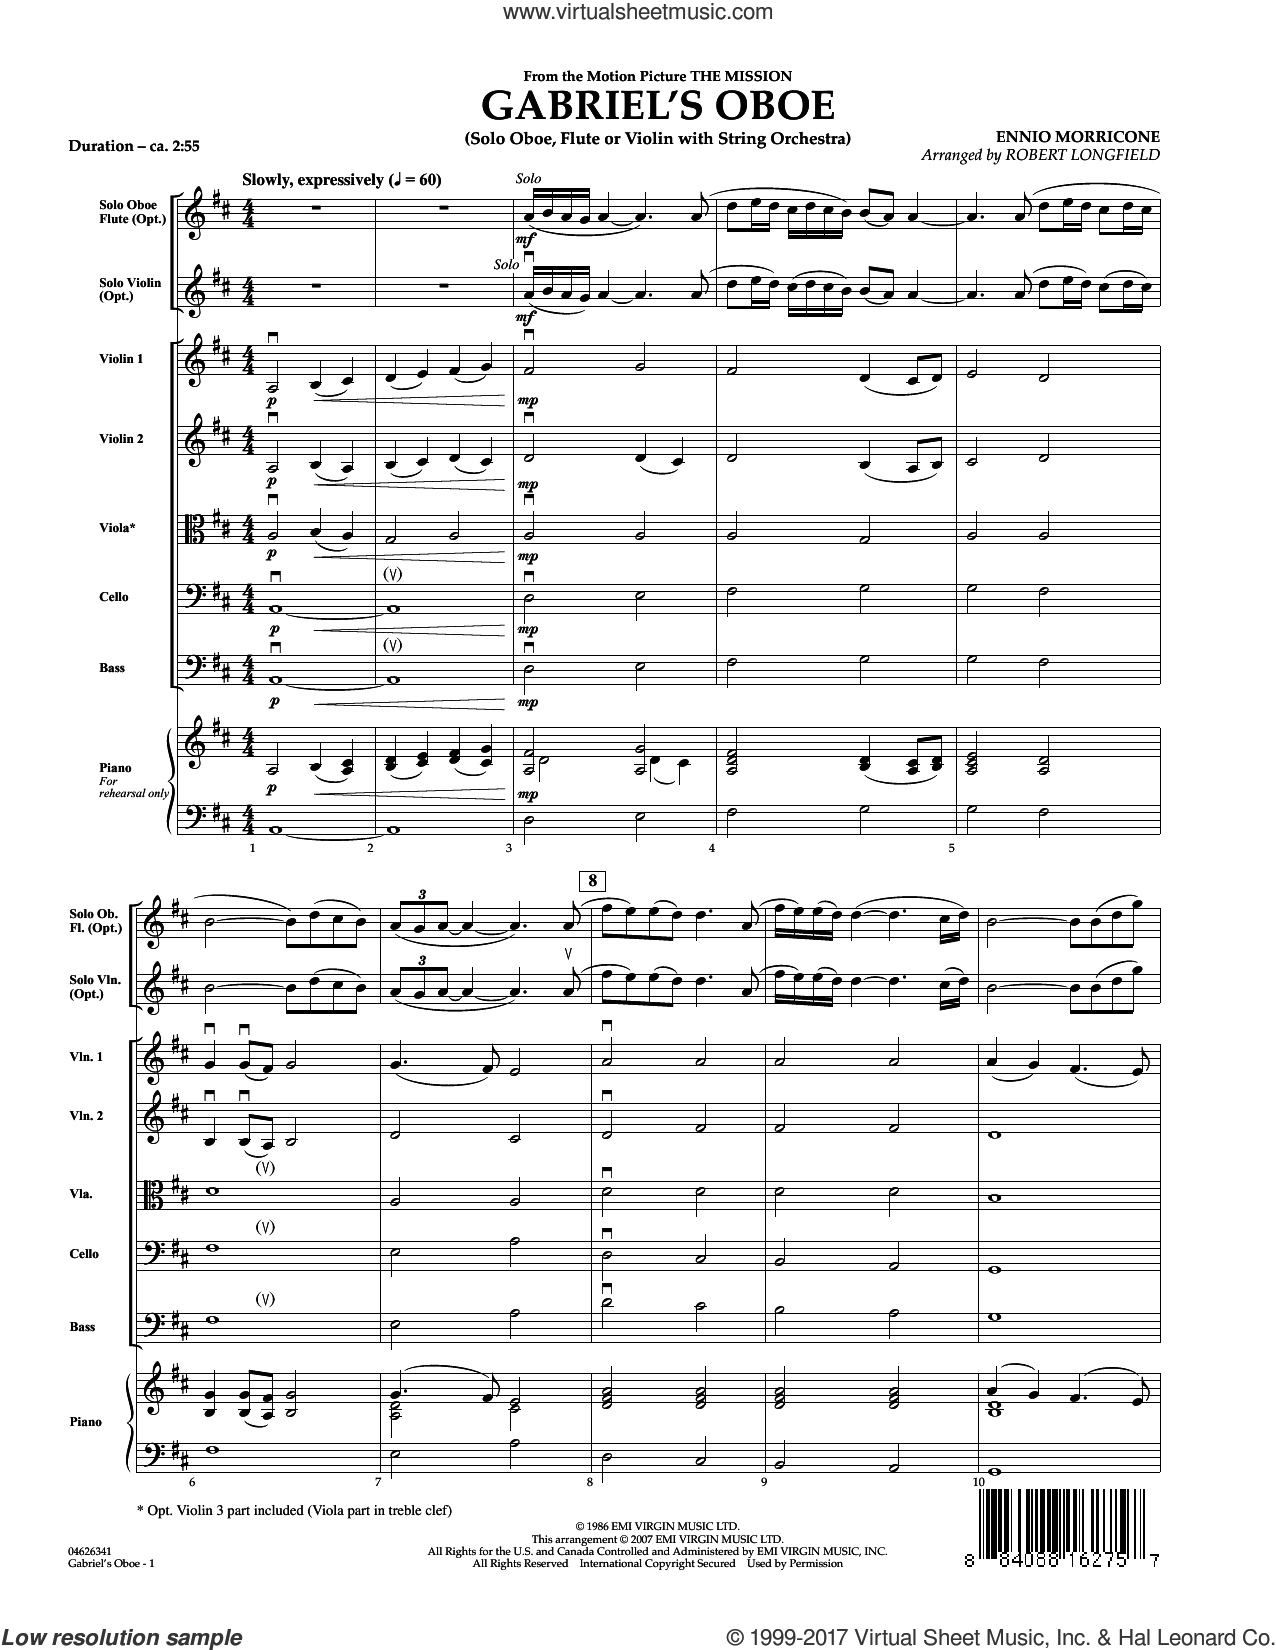 Gabriel's Oboe (from The Mission) (COMPLETE) sheet music for orchestra by Robert Longfield and Ennio Morricone, classical score, intermediate skill level